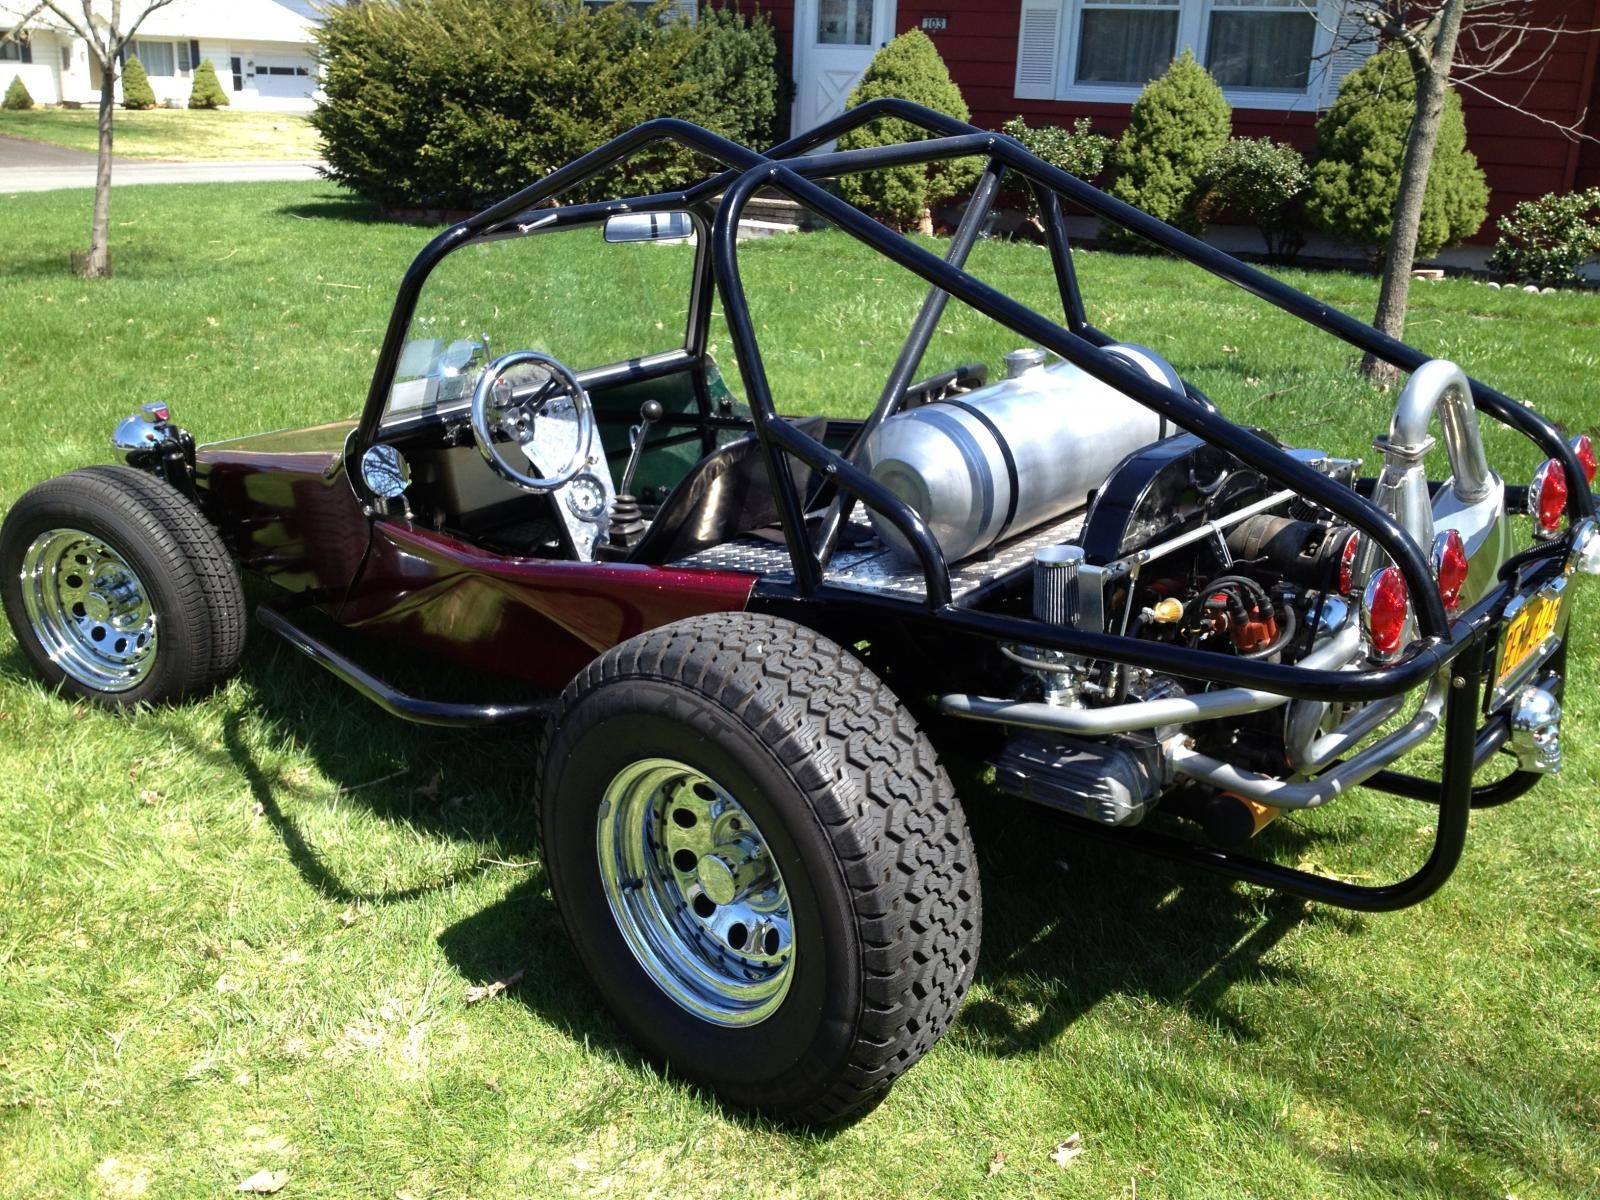 dune buggy - Google Search | playtime | Pinterest